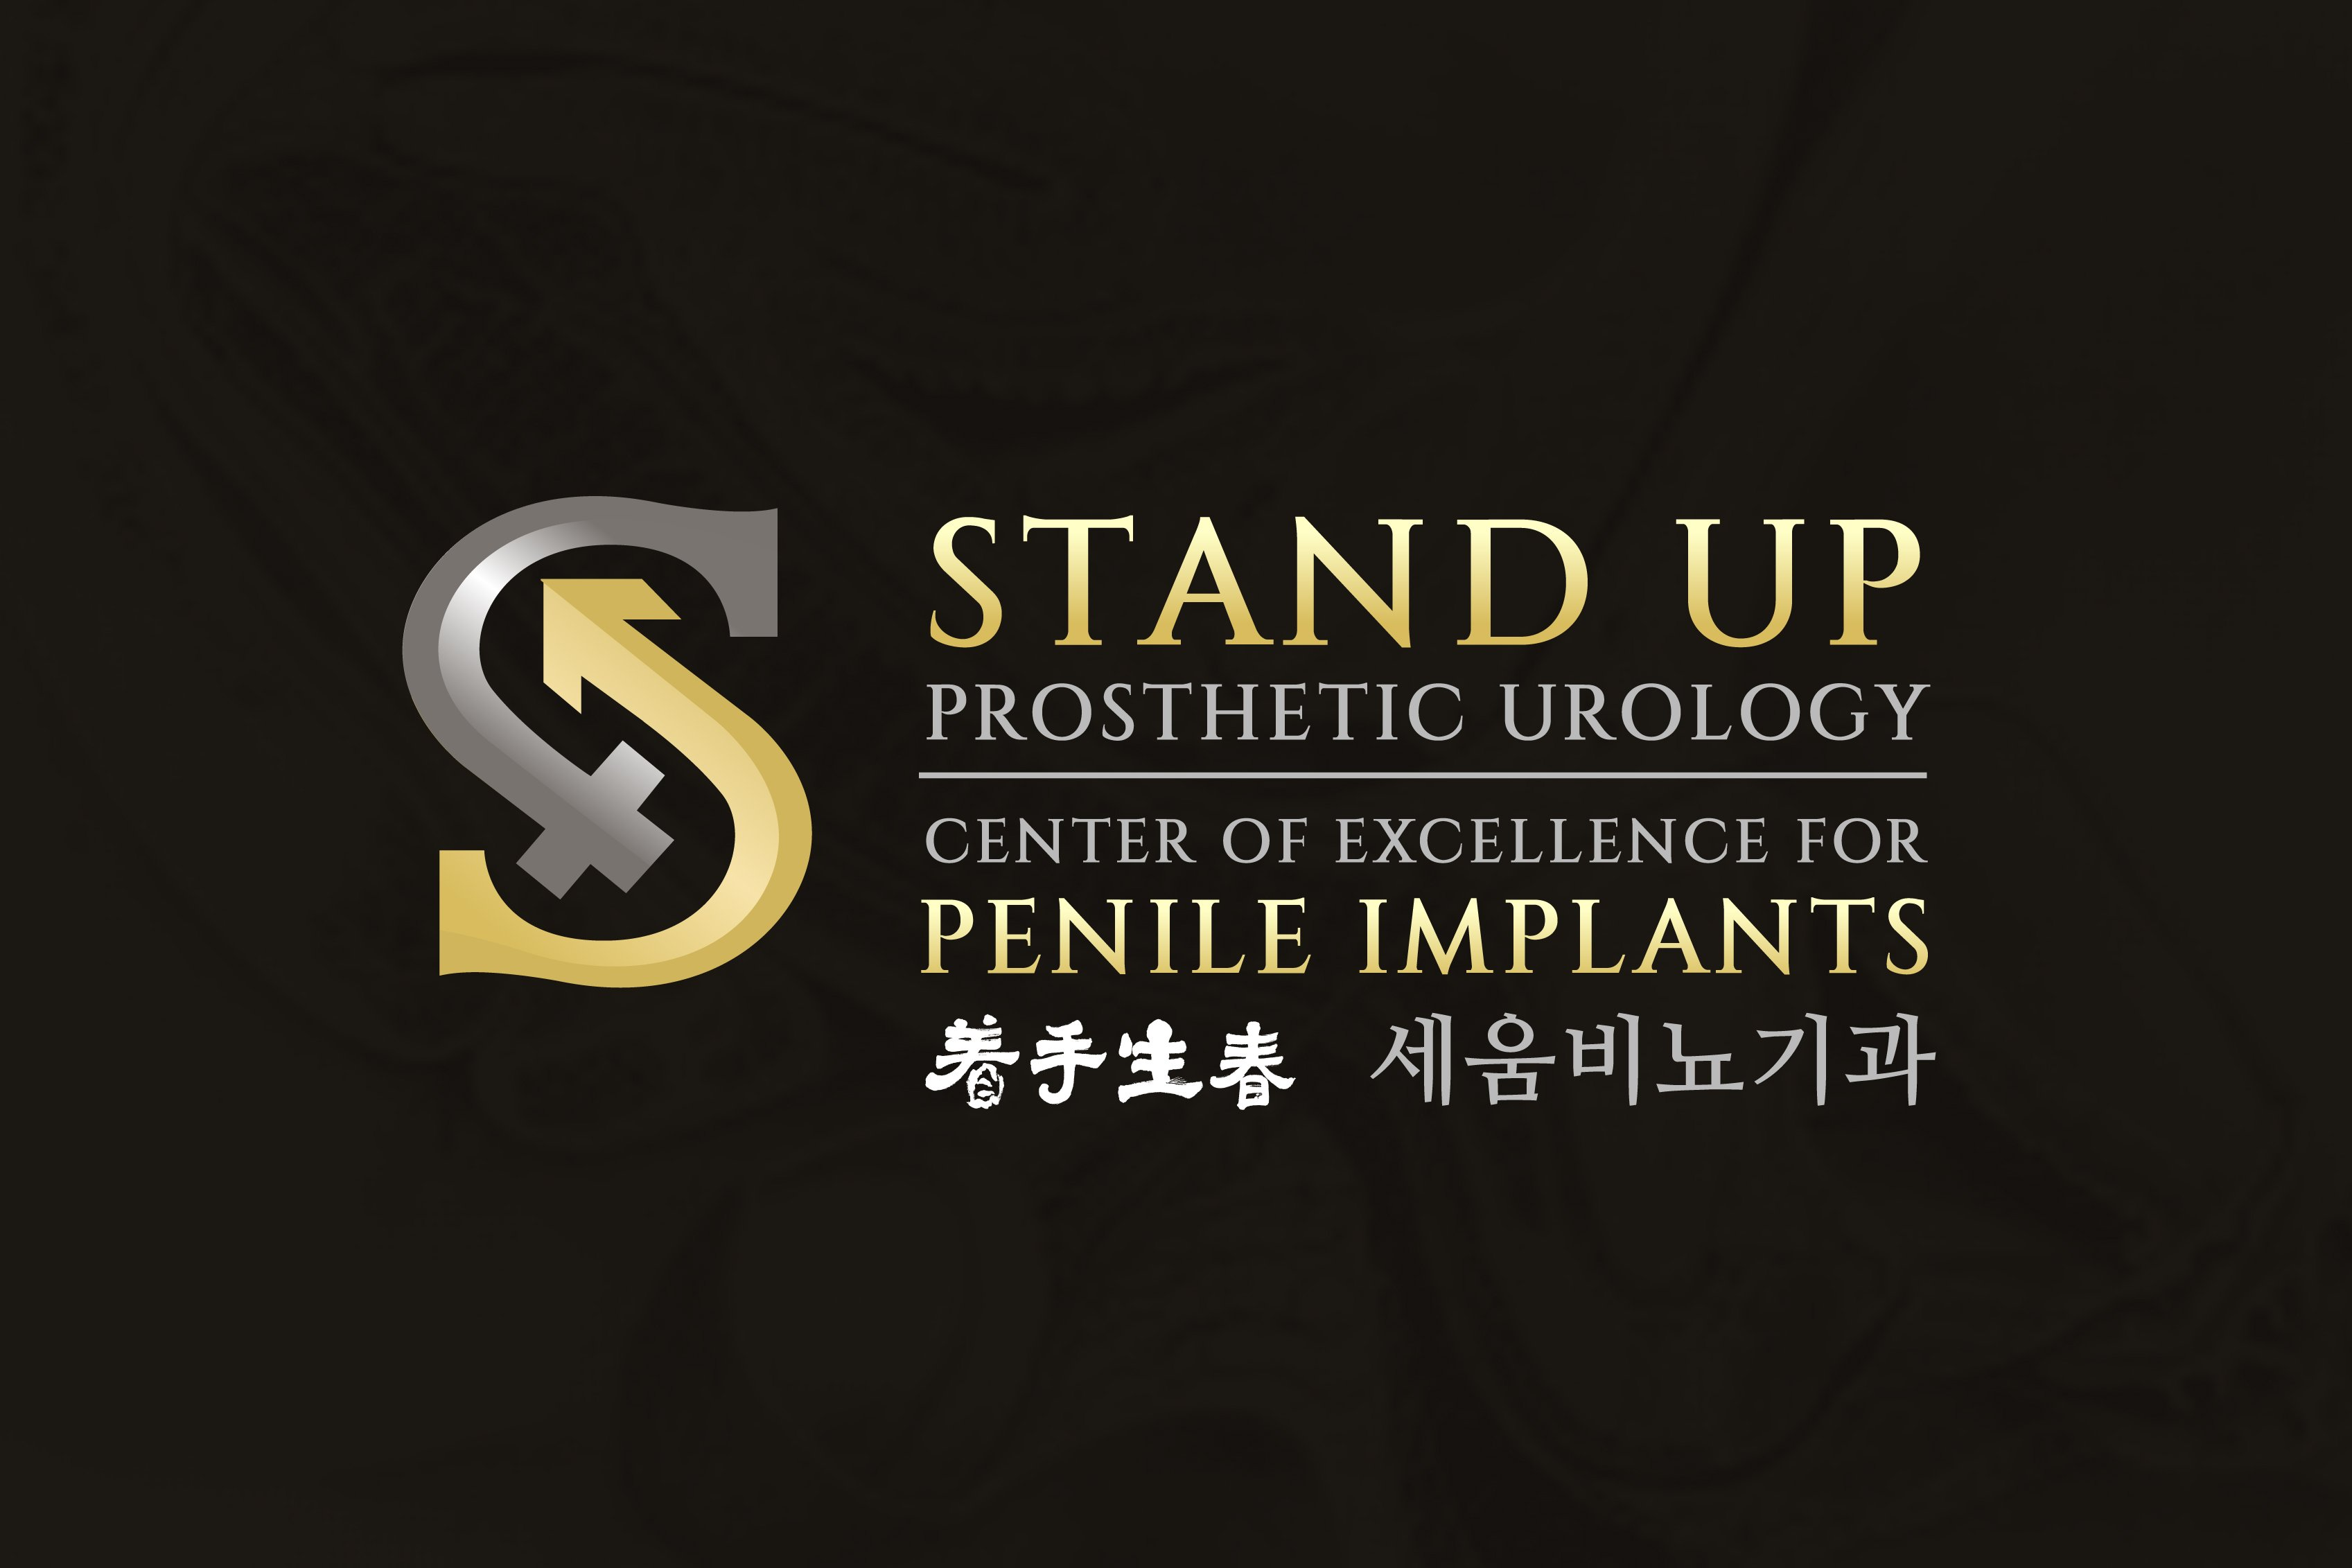 Stand Up Prosthetic Urology Center of Excellence